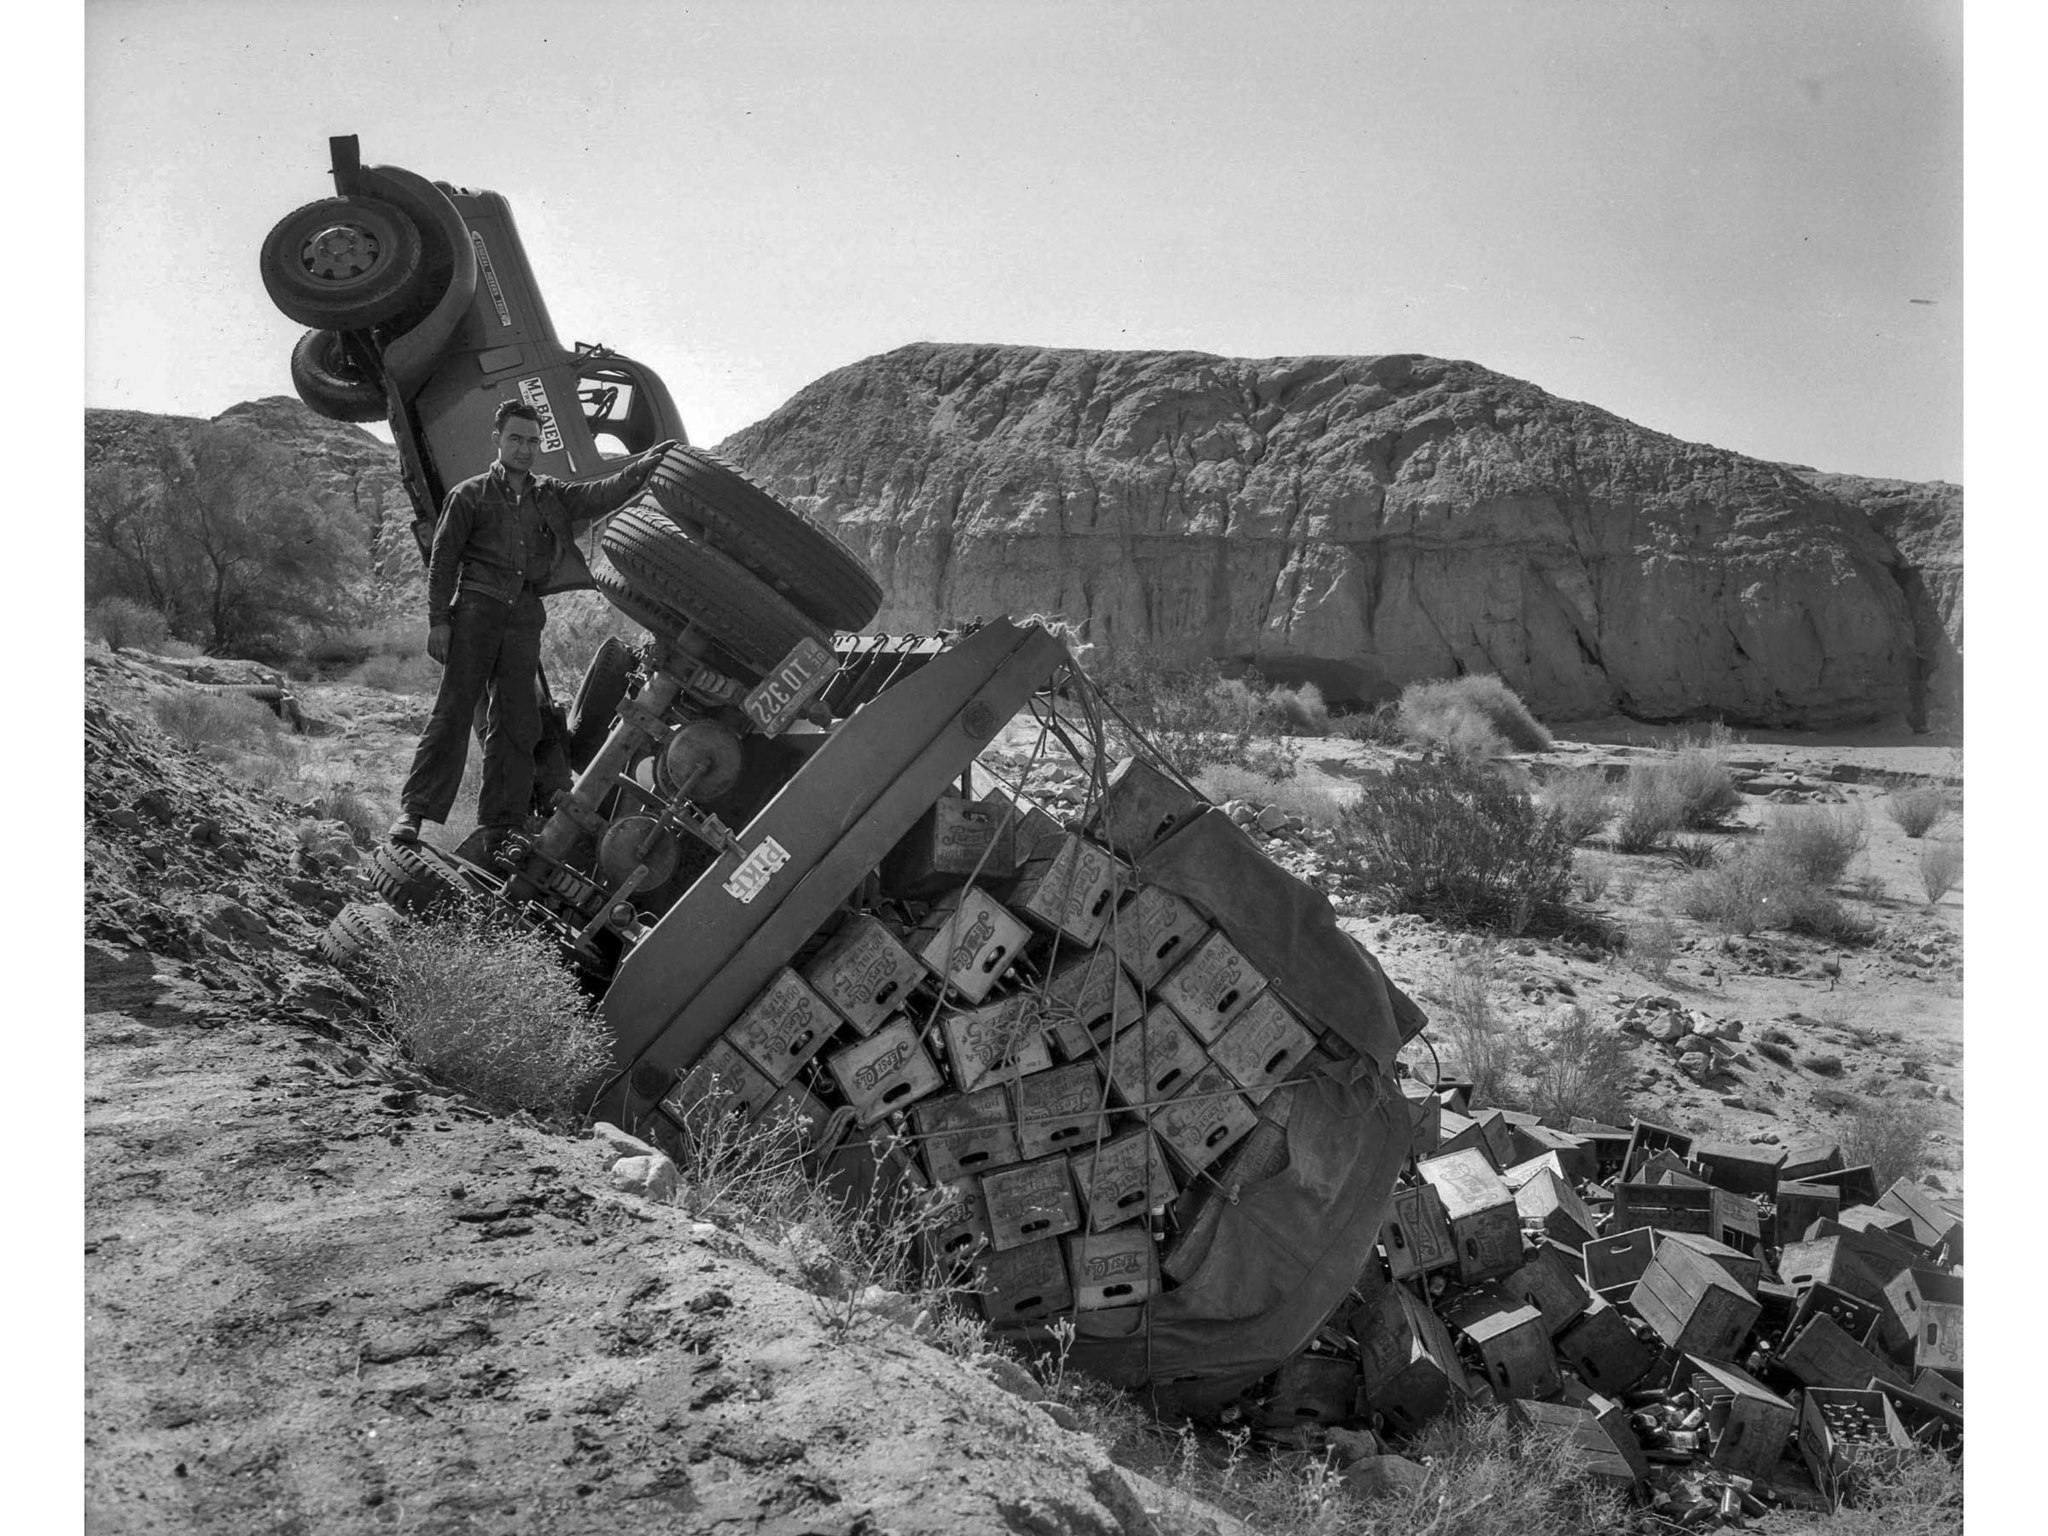 June 6, 1943: An overturned Army truck